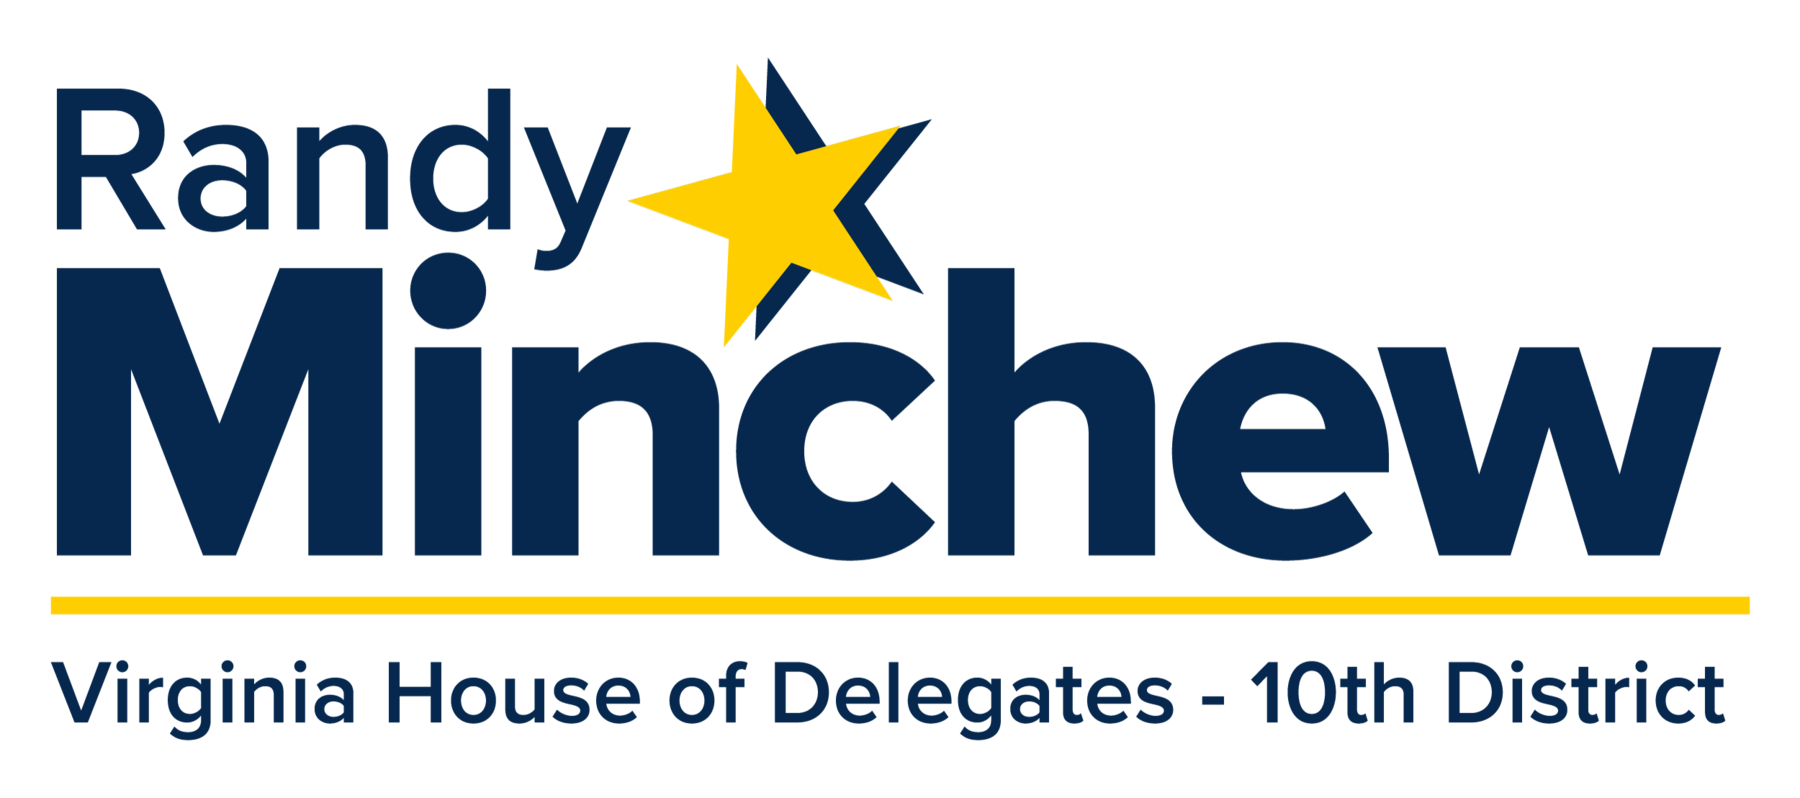 Minchew for Delegate: Contribute